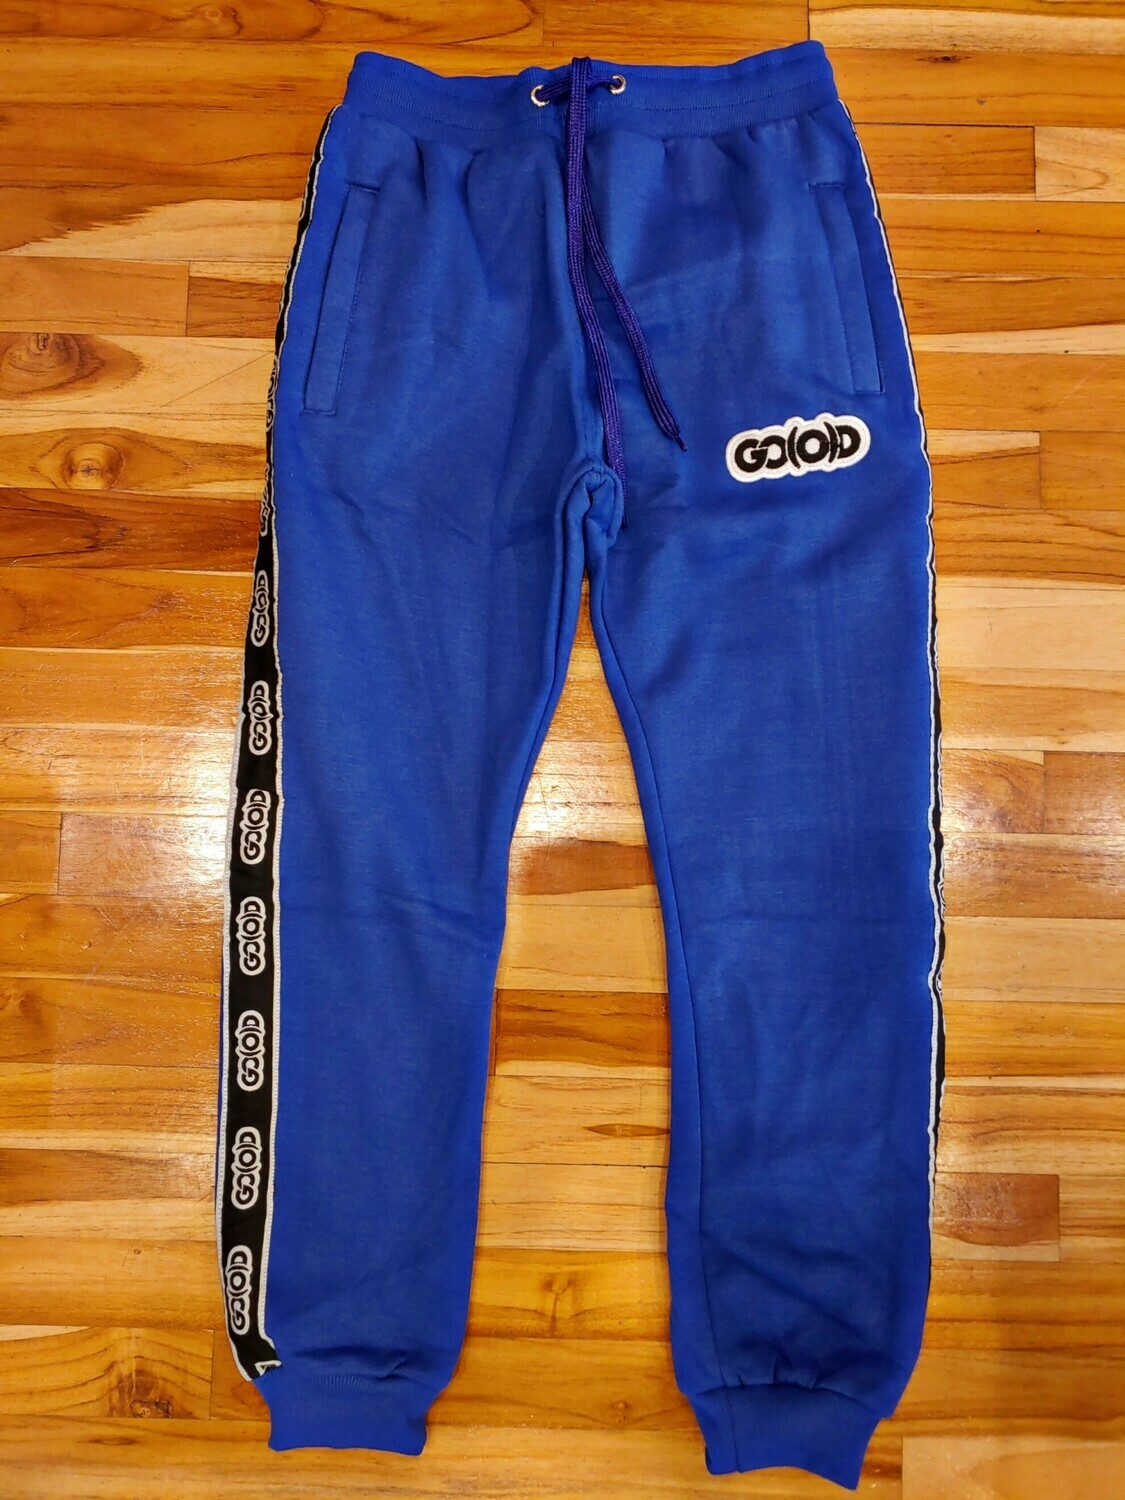 GO(O)D Strip Joggers-loyal royal/black/white